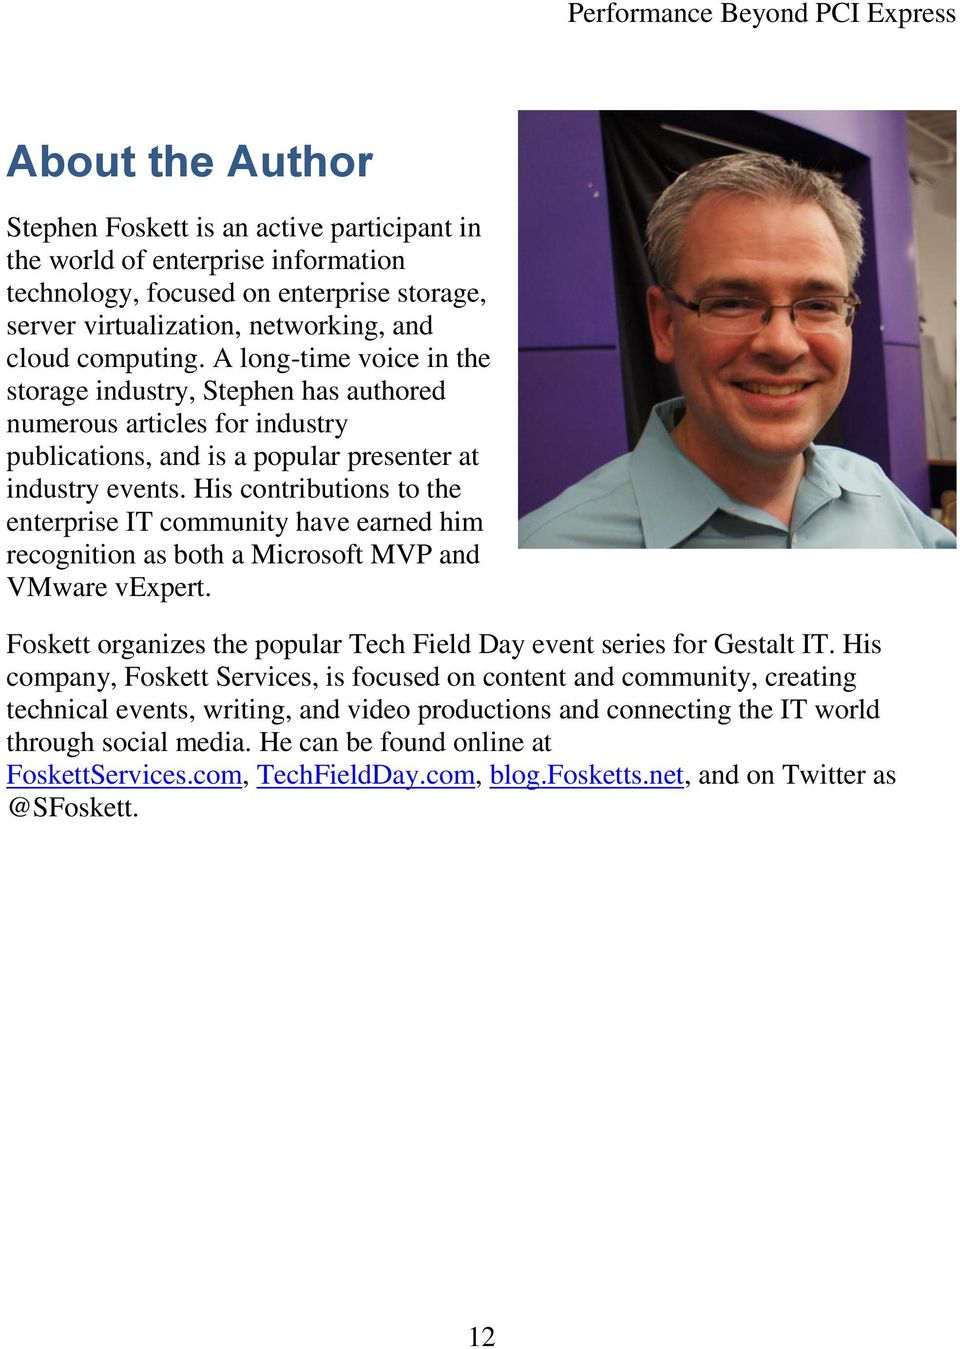 His contributions to the enterprise IT community have earned him recognition as both a Microsoft MVP and VMware vexpert. Foskett organizes the popular Tech Field Day event series for Gestalt IT.